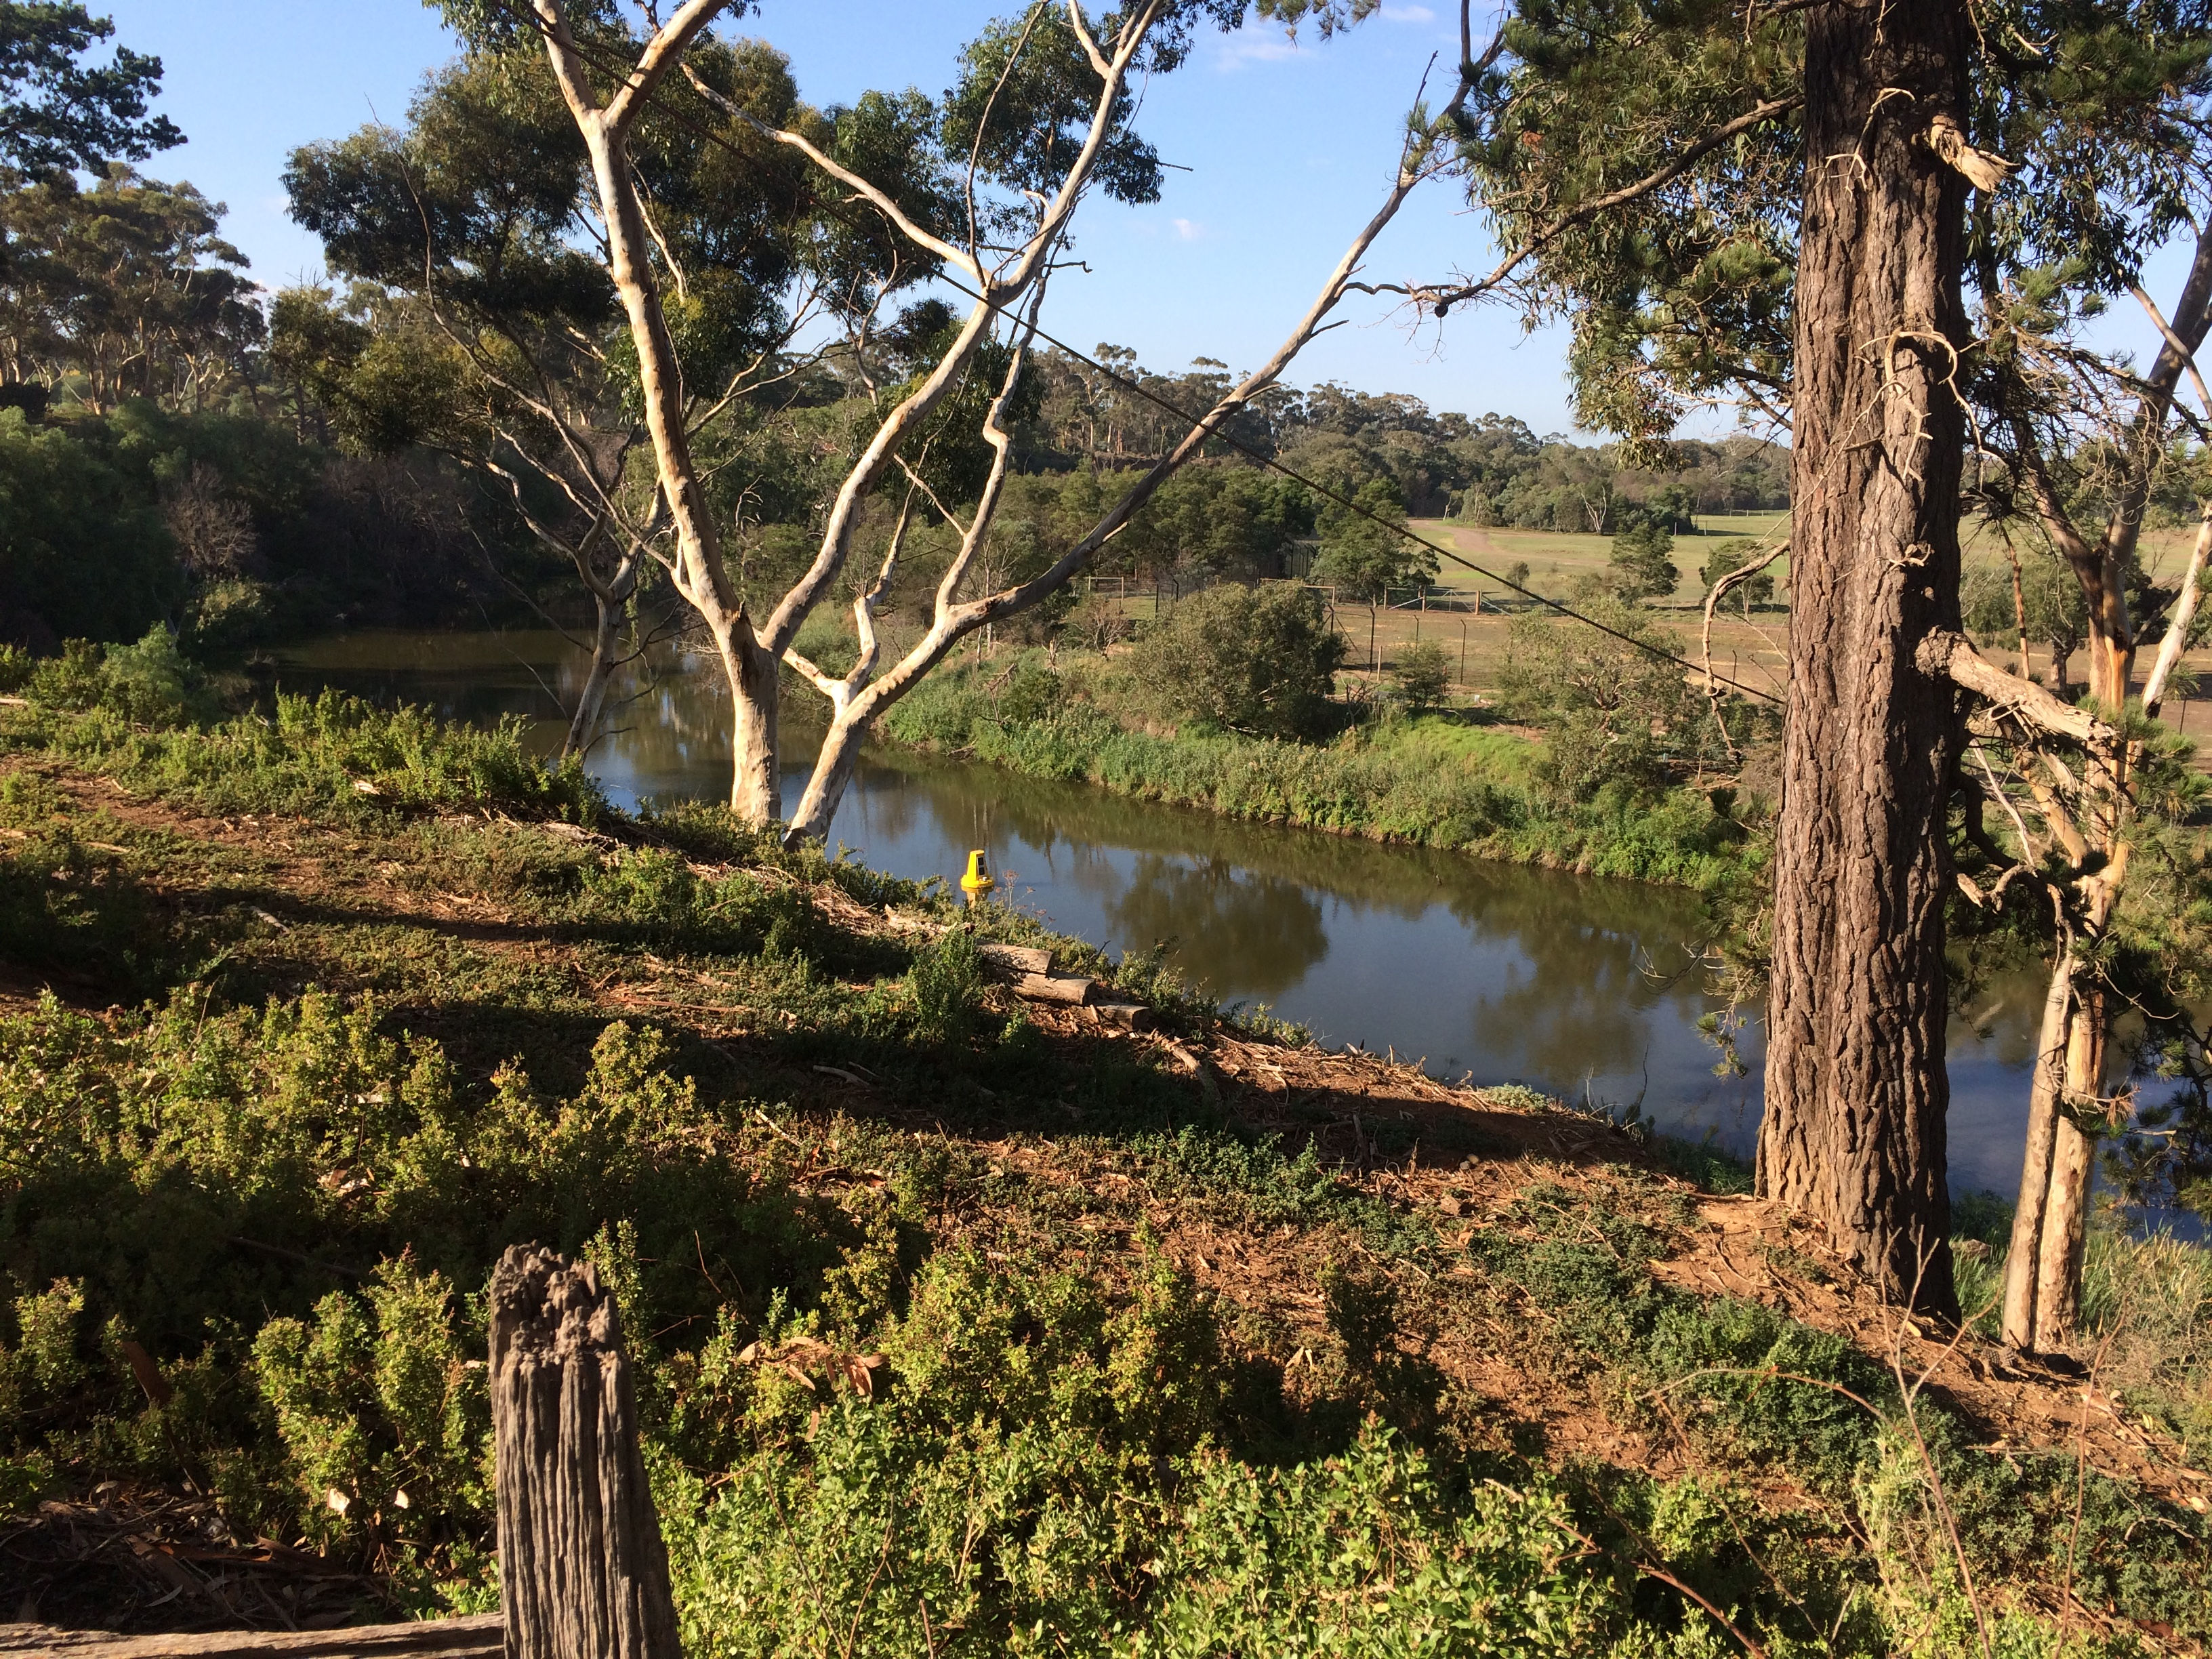 Lower Werribee River after environmental watering on 16 March 2016, by Melbourne Water